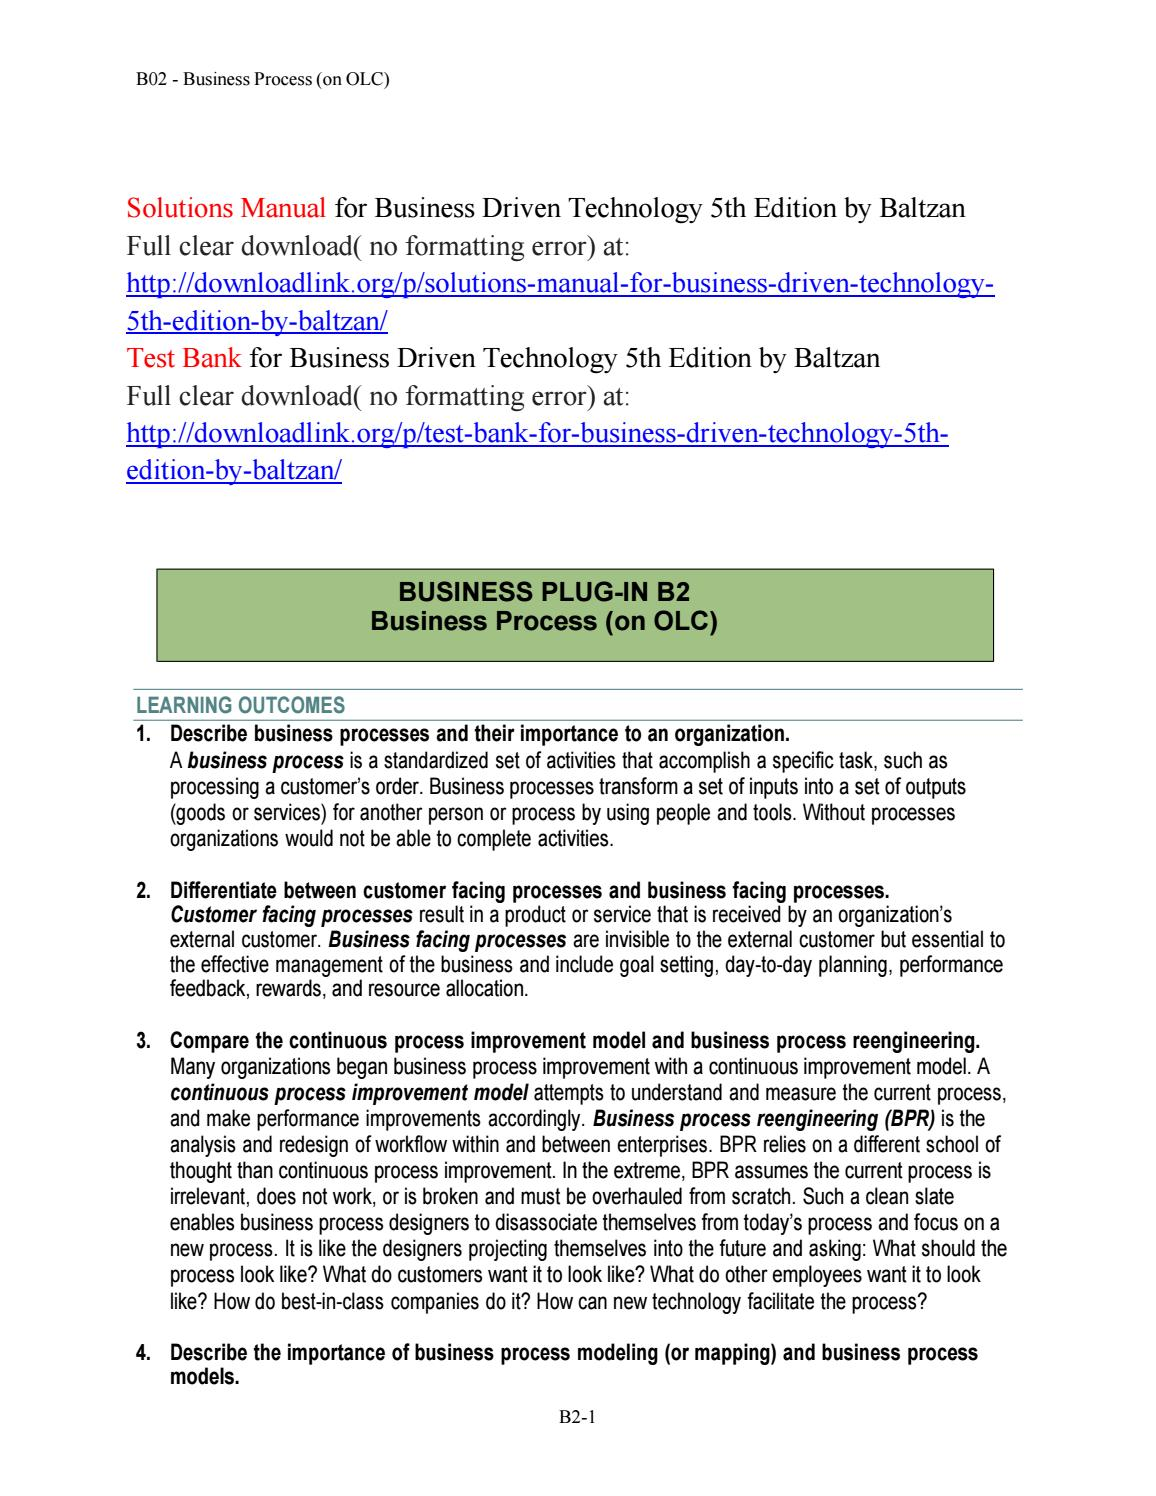 Solutions Manual for Business Driven Technology 5th Edition by Baltzan by  Mann9654 - issuu